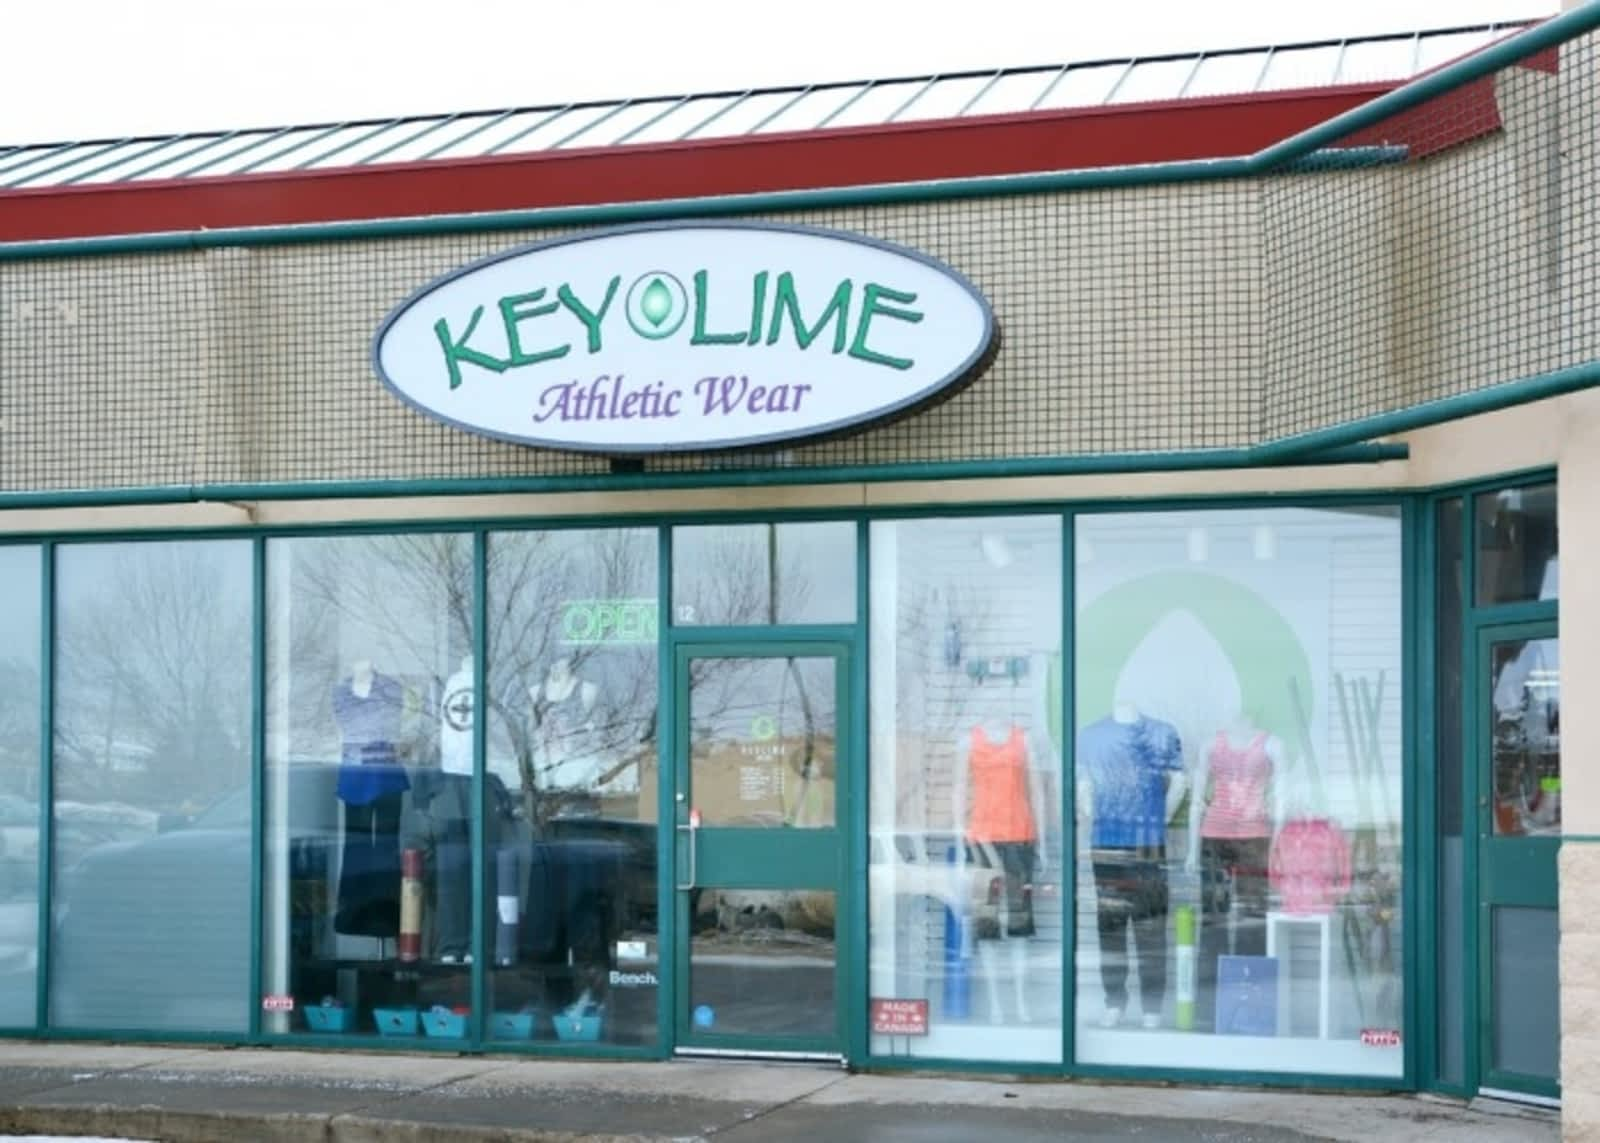 9bce4b2841 Keylime Athletic Wear - 100-2693 Broadmoor Blvd